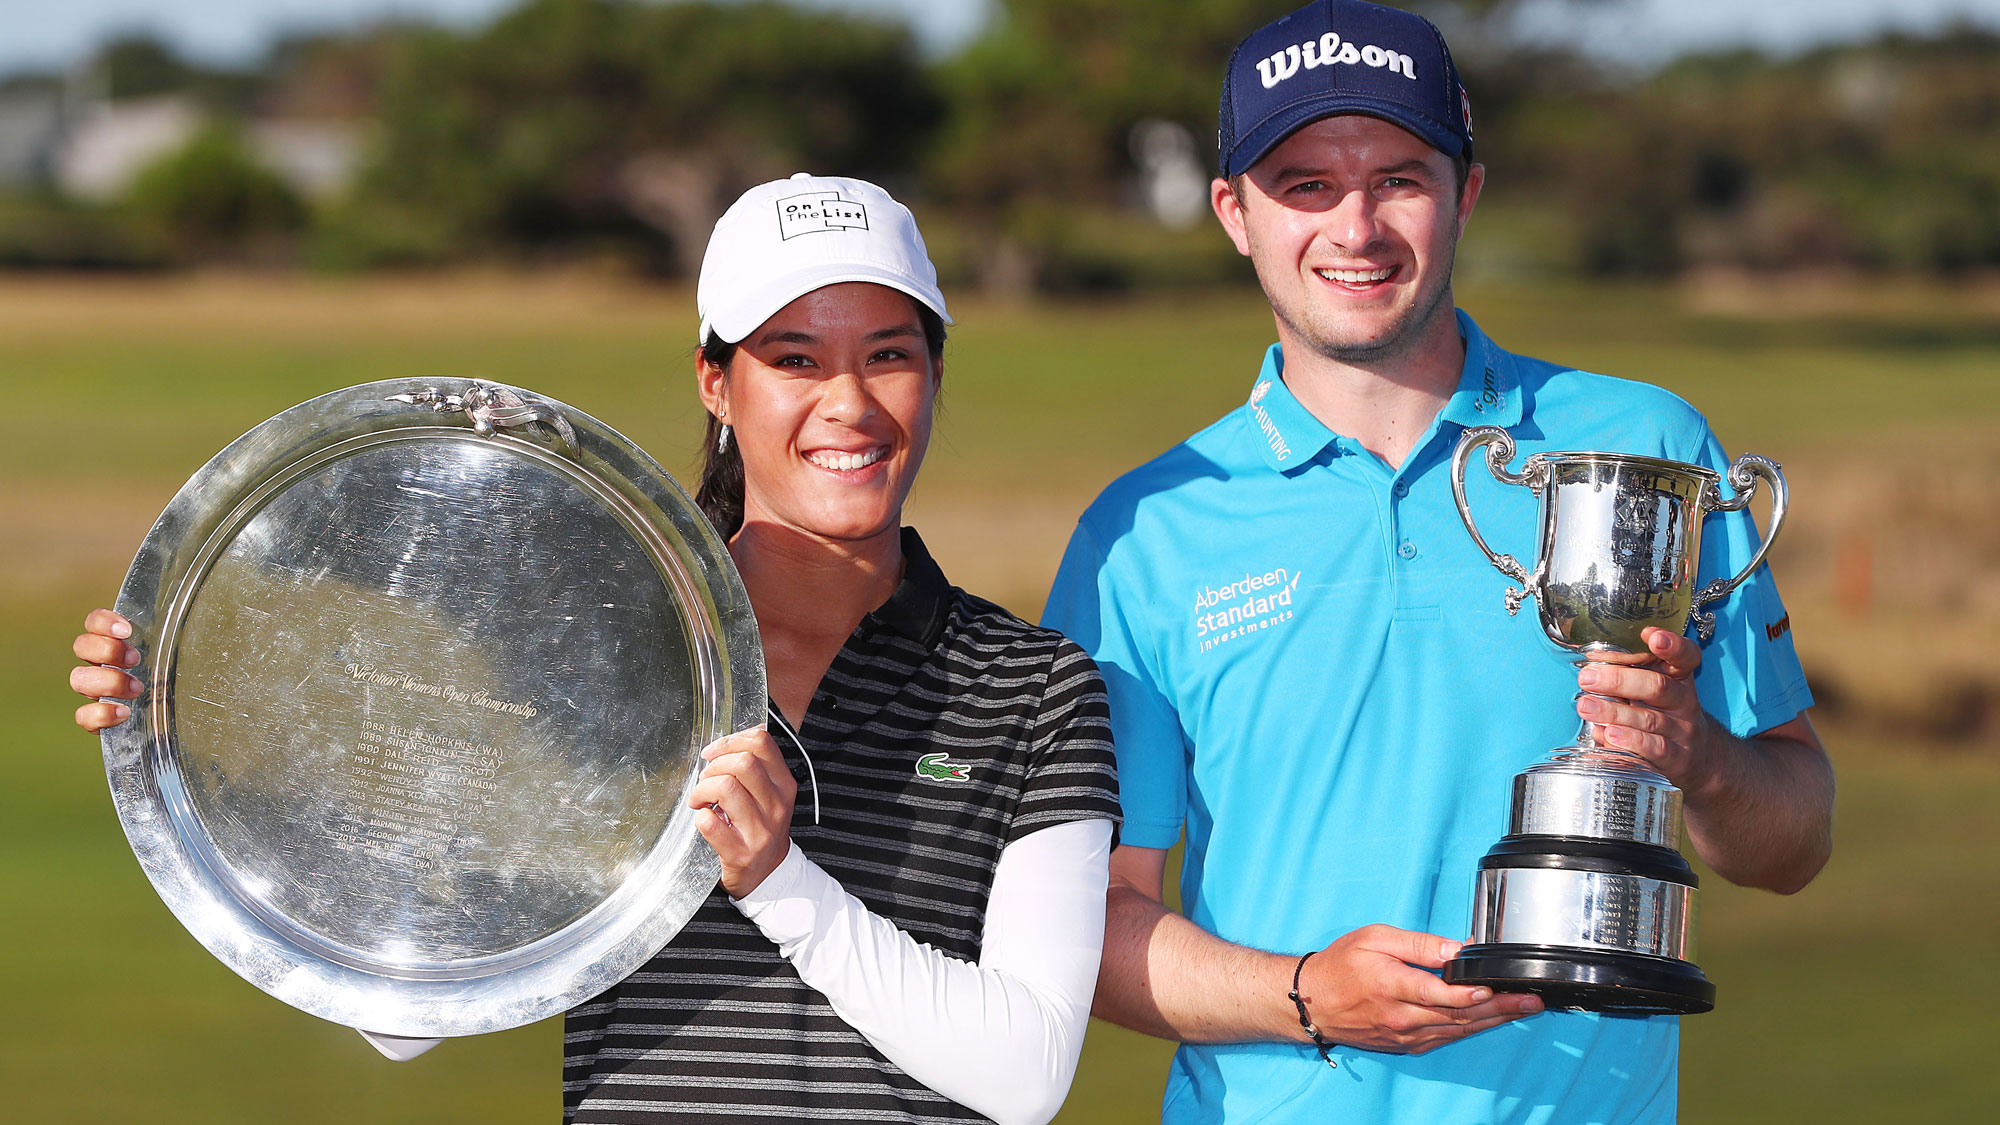 Defending champs Celine Boutier and David Law